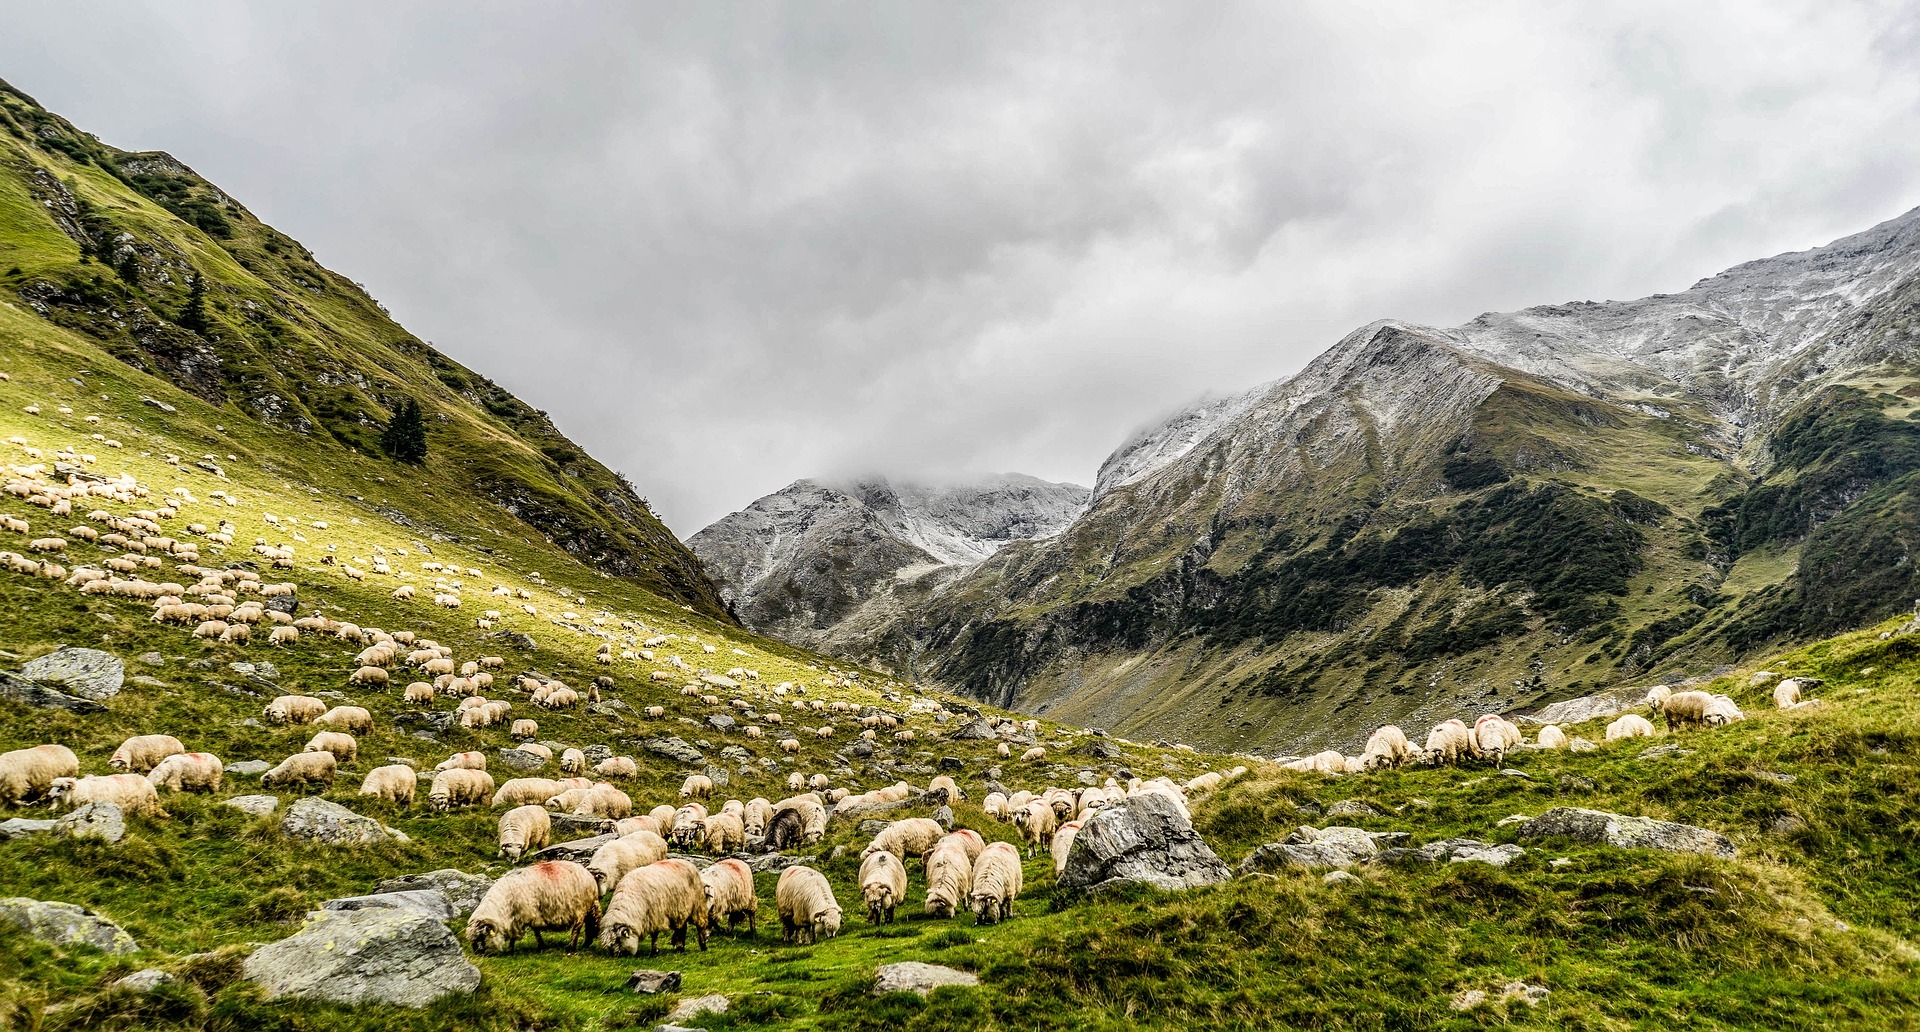 Flock of Sheep on a Mountain Hillside - Farm Background Wallpaper Pictures